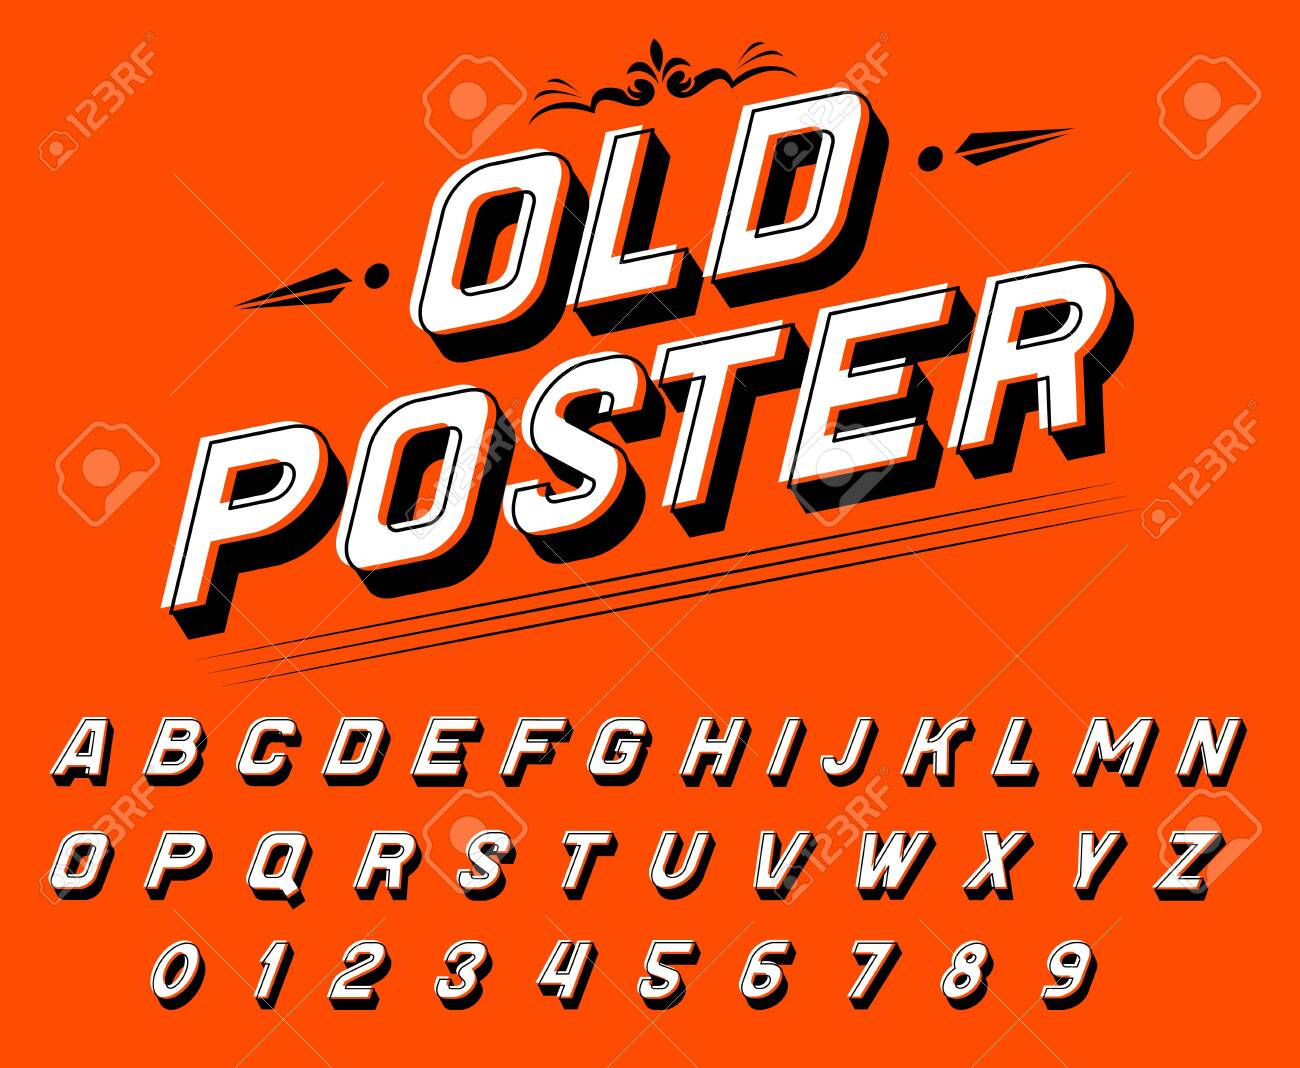 Pop art font for posters  Comic retro game alphabet  Vintage